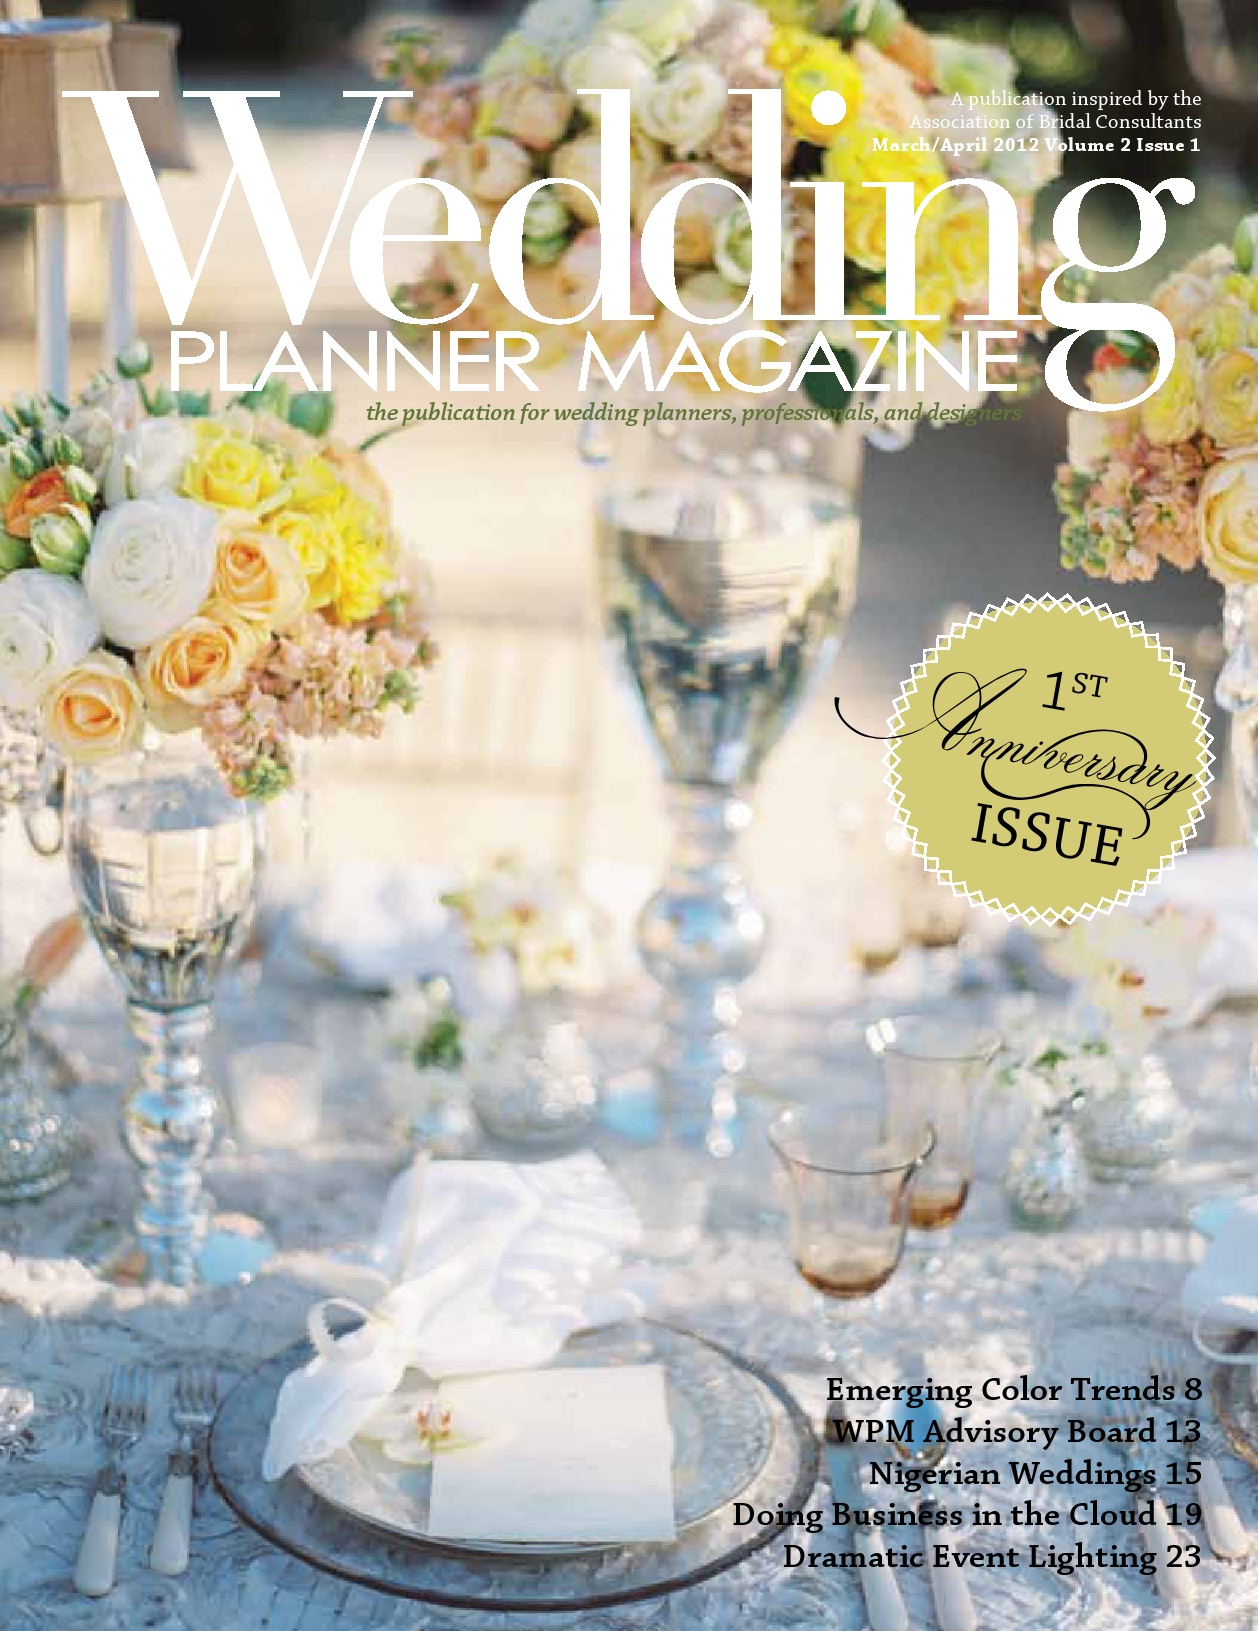 Wedding Planner Mag Vol 2 Issue 1 Cover.jpg